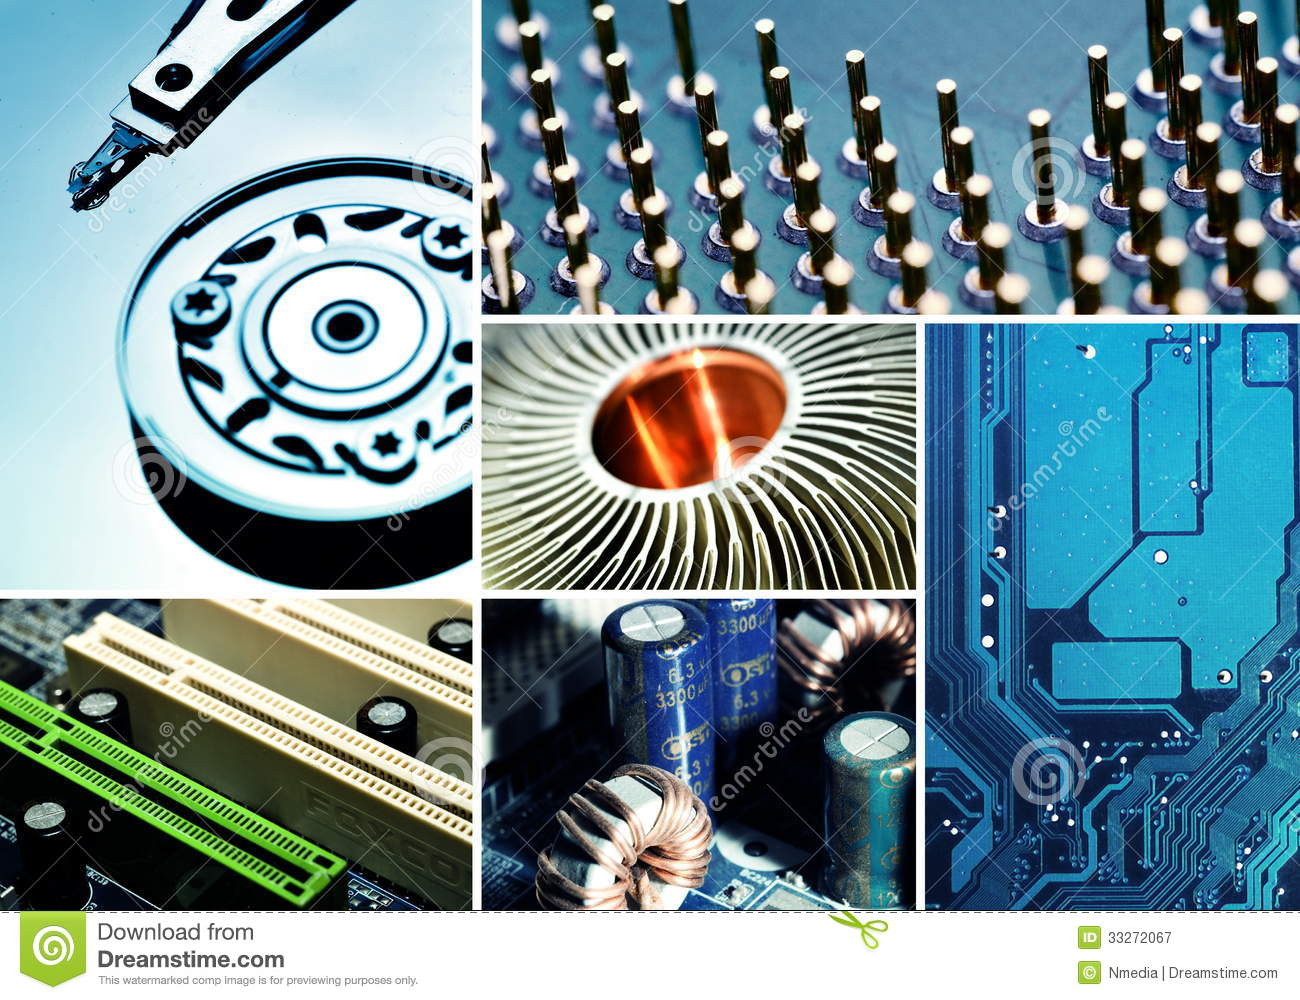 Computer Hardware Collage Royalty Free Stock Photography